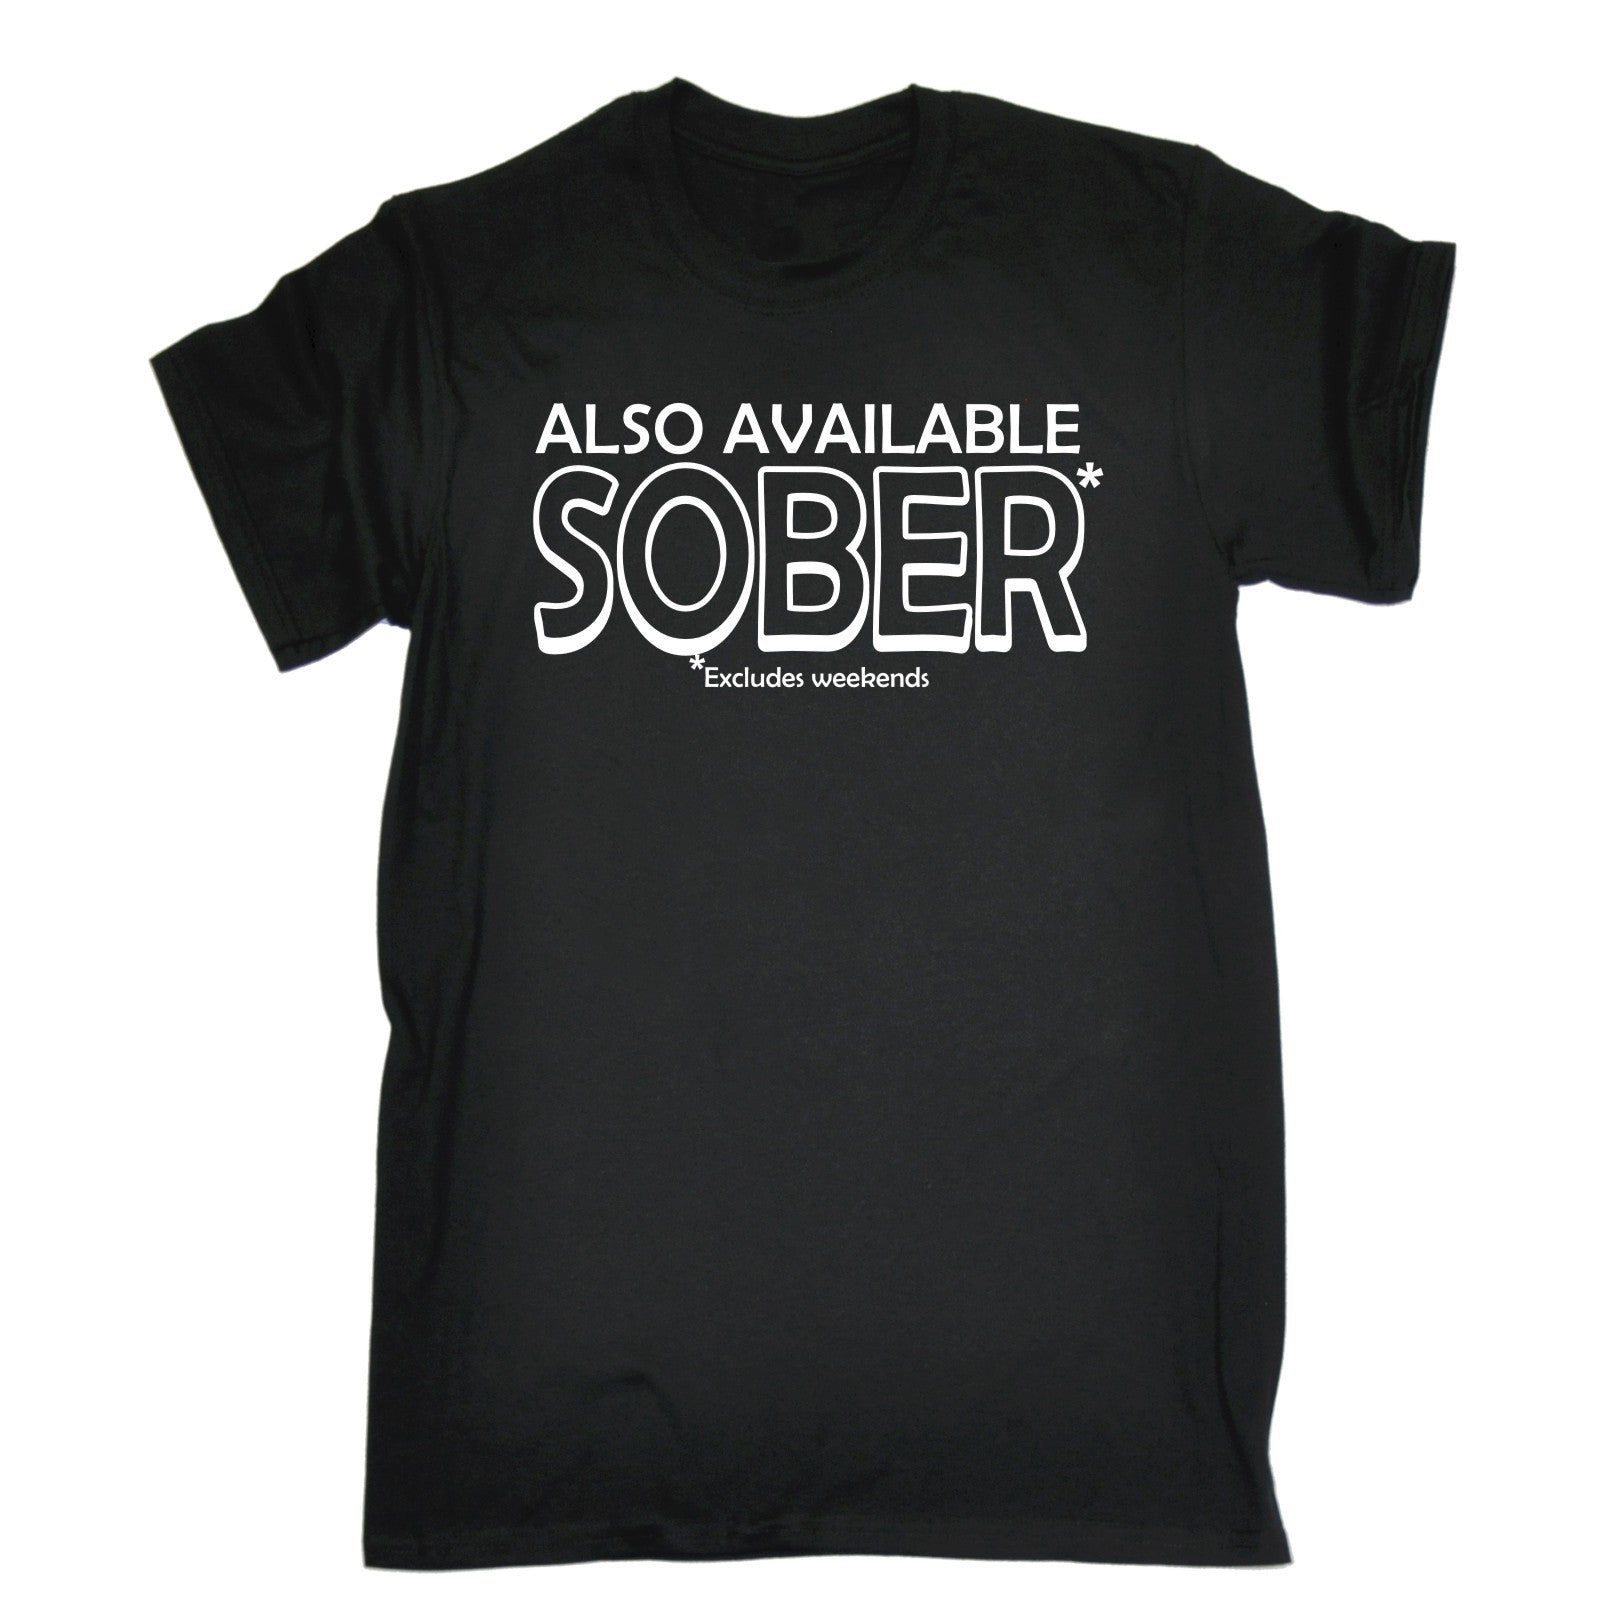 abc2eab322 Buy 123t Men's Also Available Sober Excludes Weekends Funny T ...